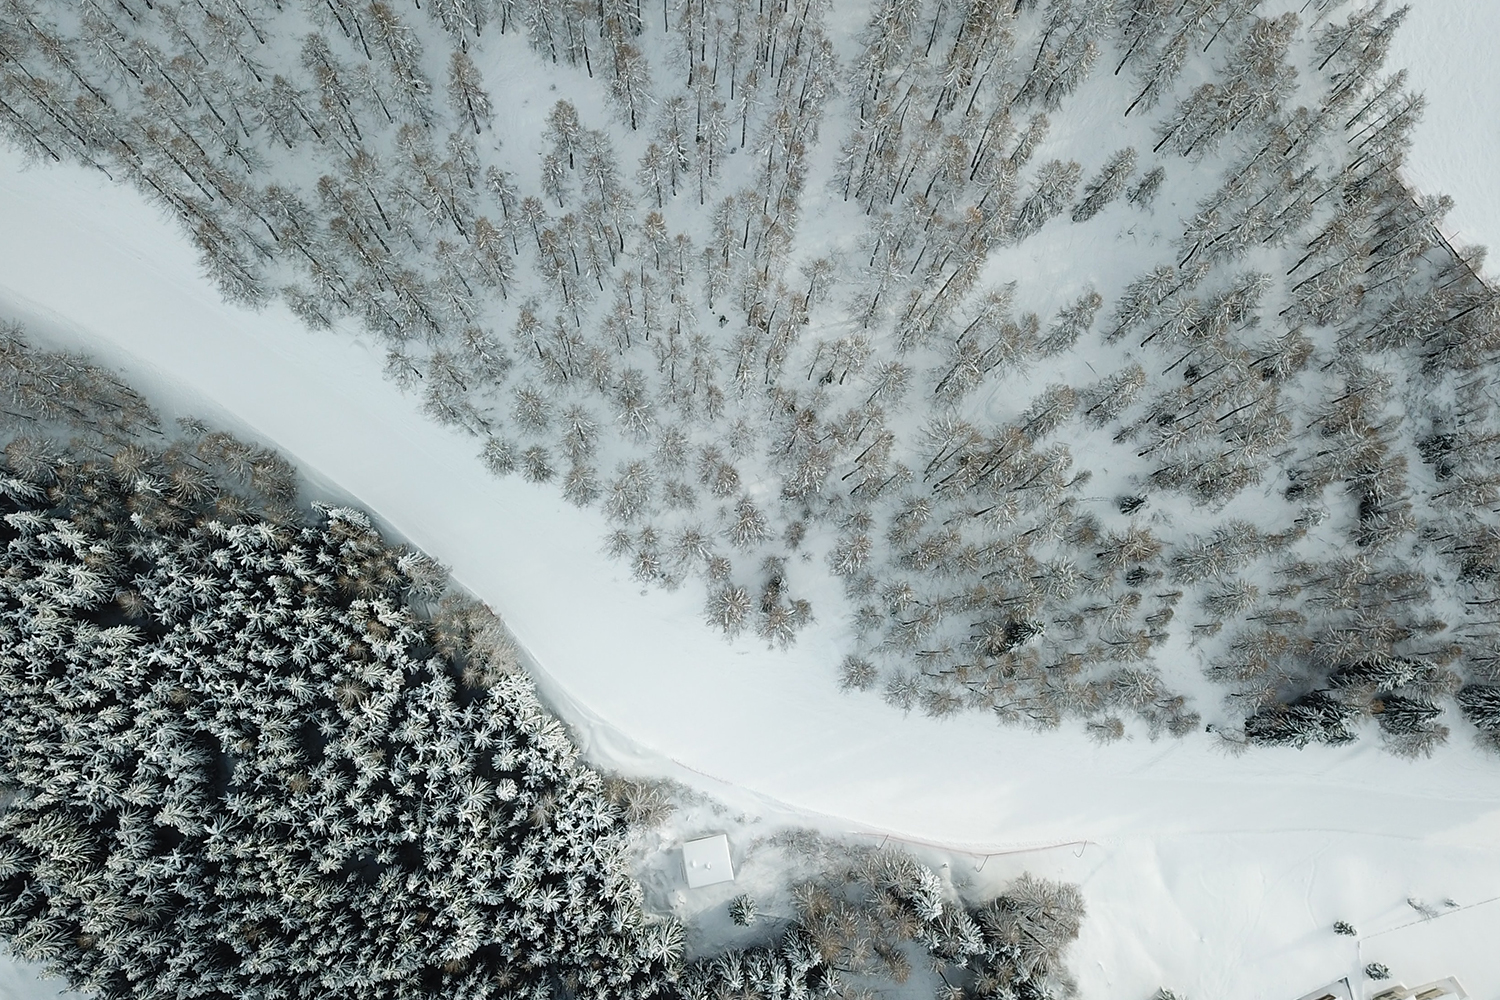 an overhead shot of a snowy scene with trees surrounding a path